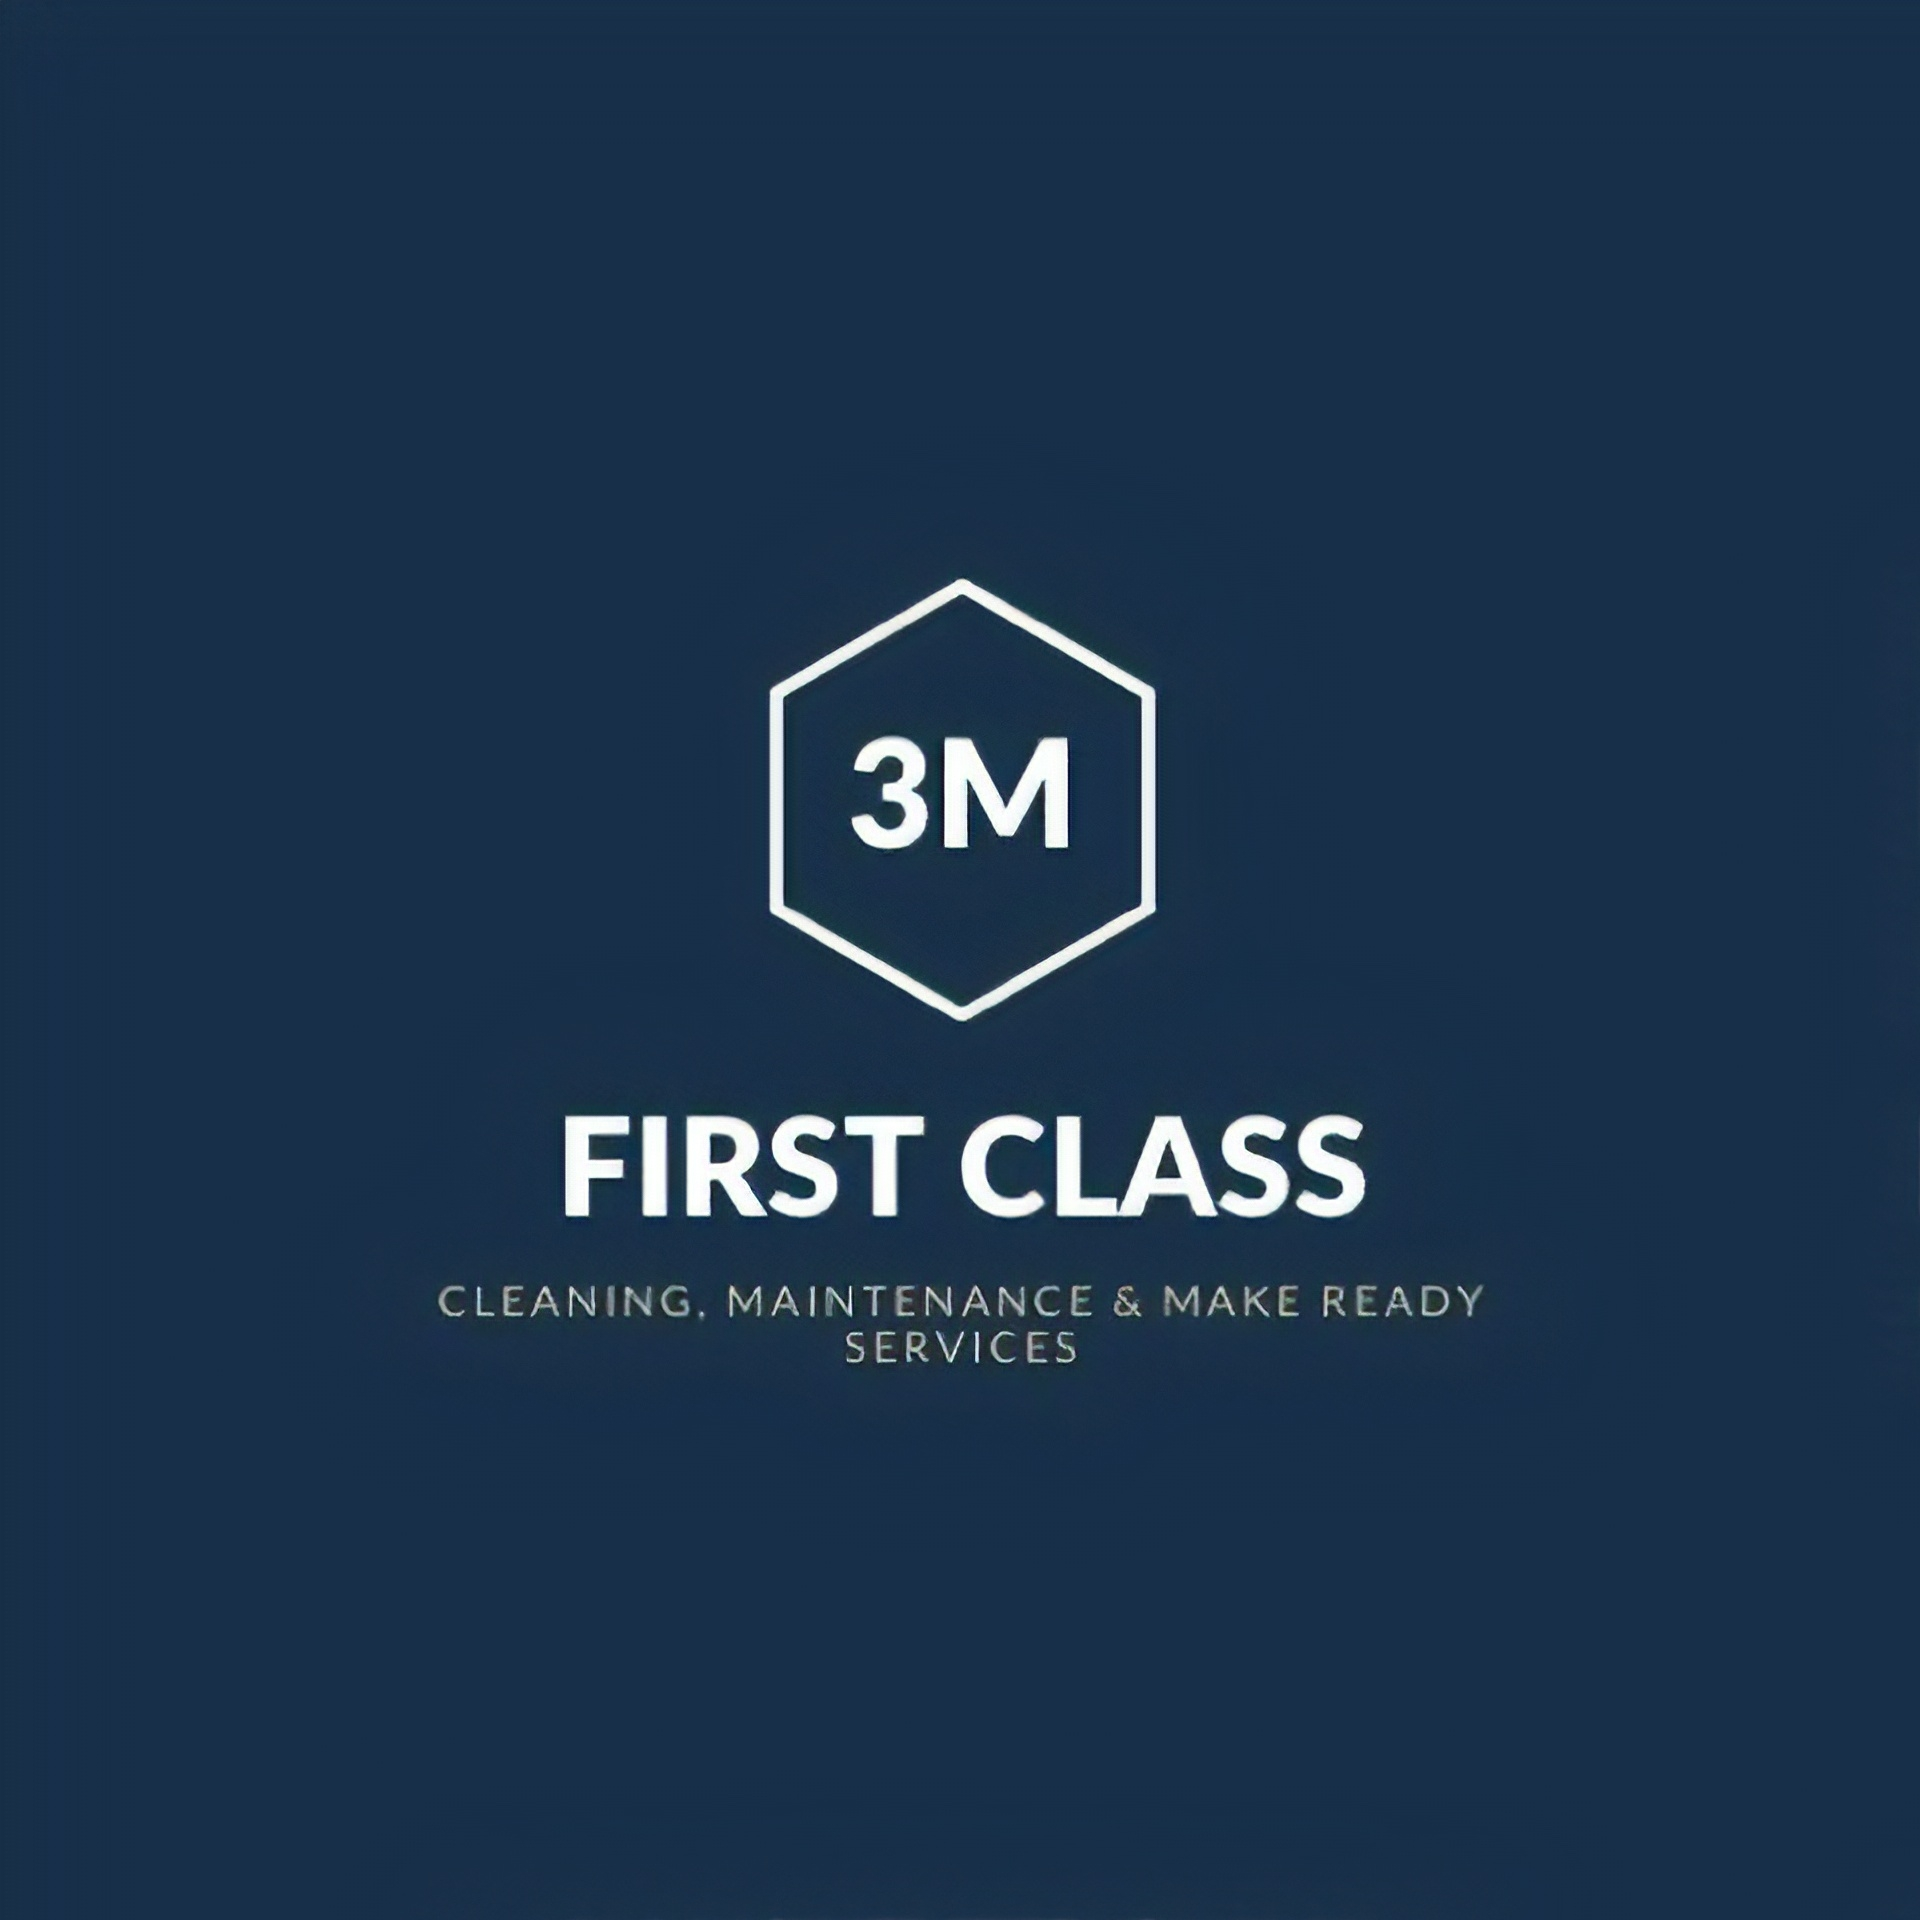 3M 1st Class Cleaning, Maint, and Make Ready Services